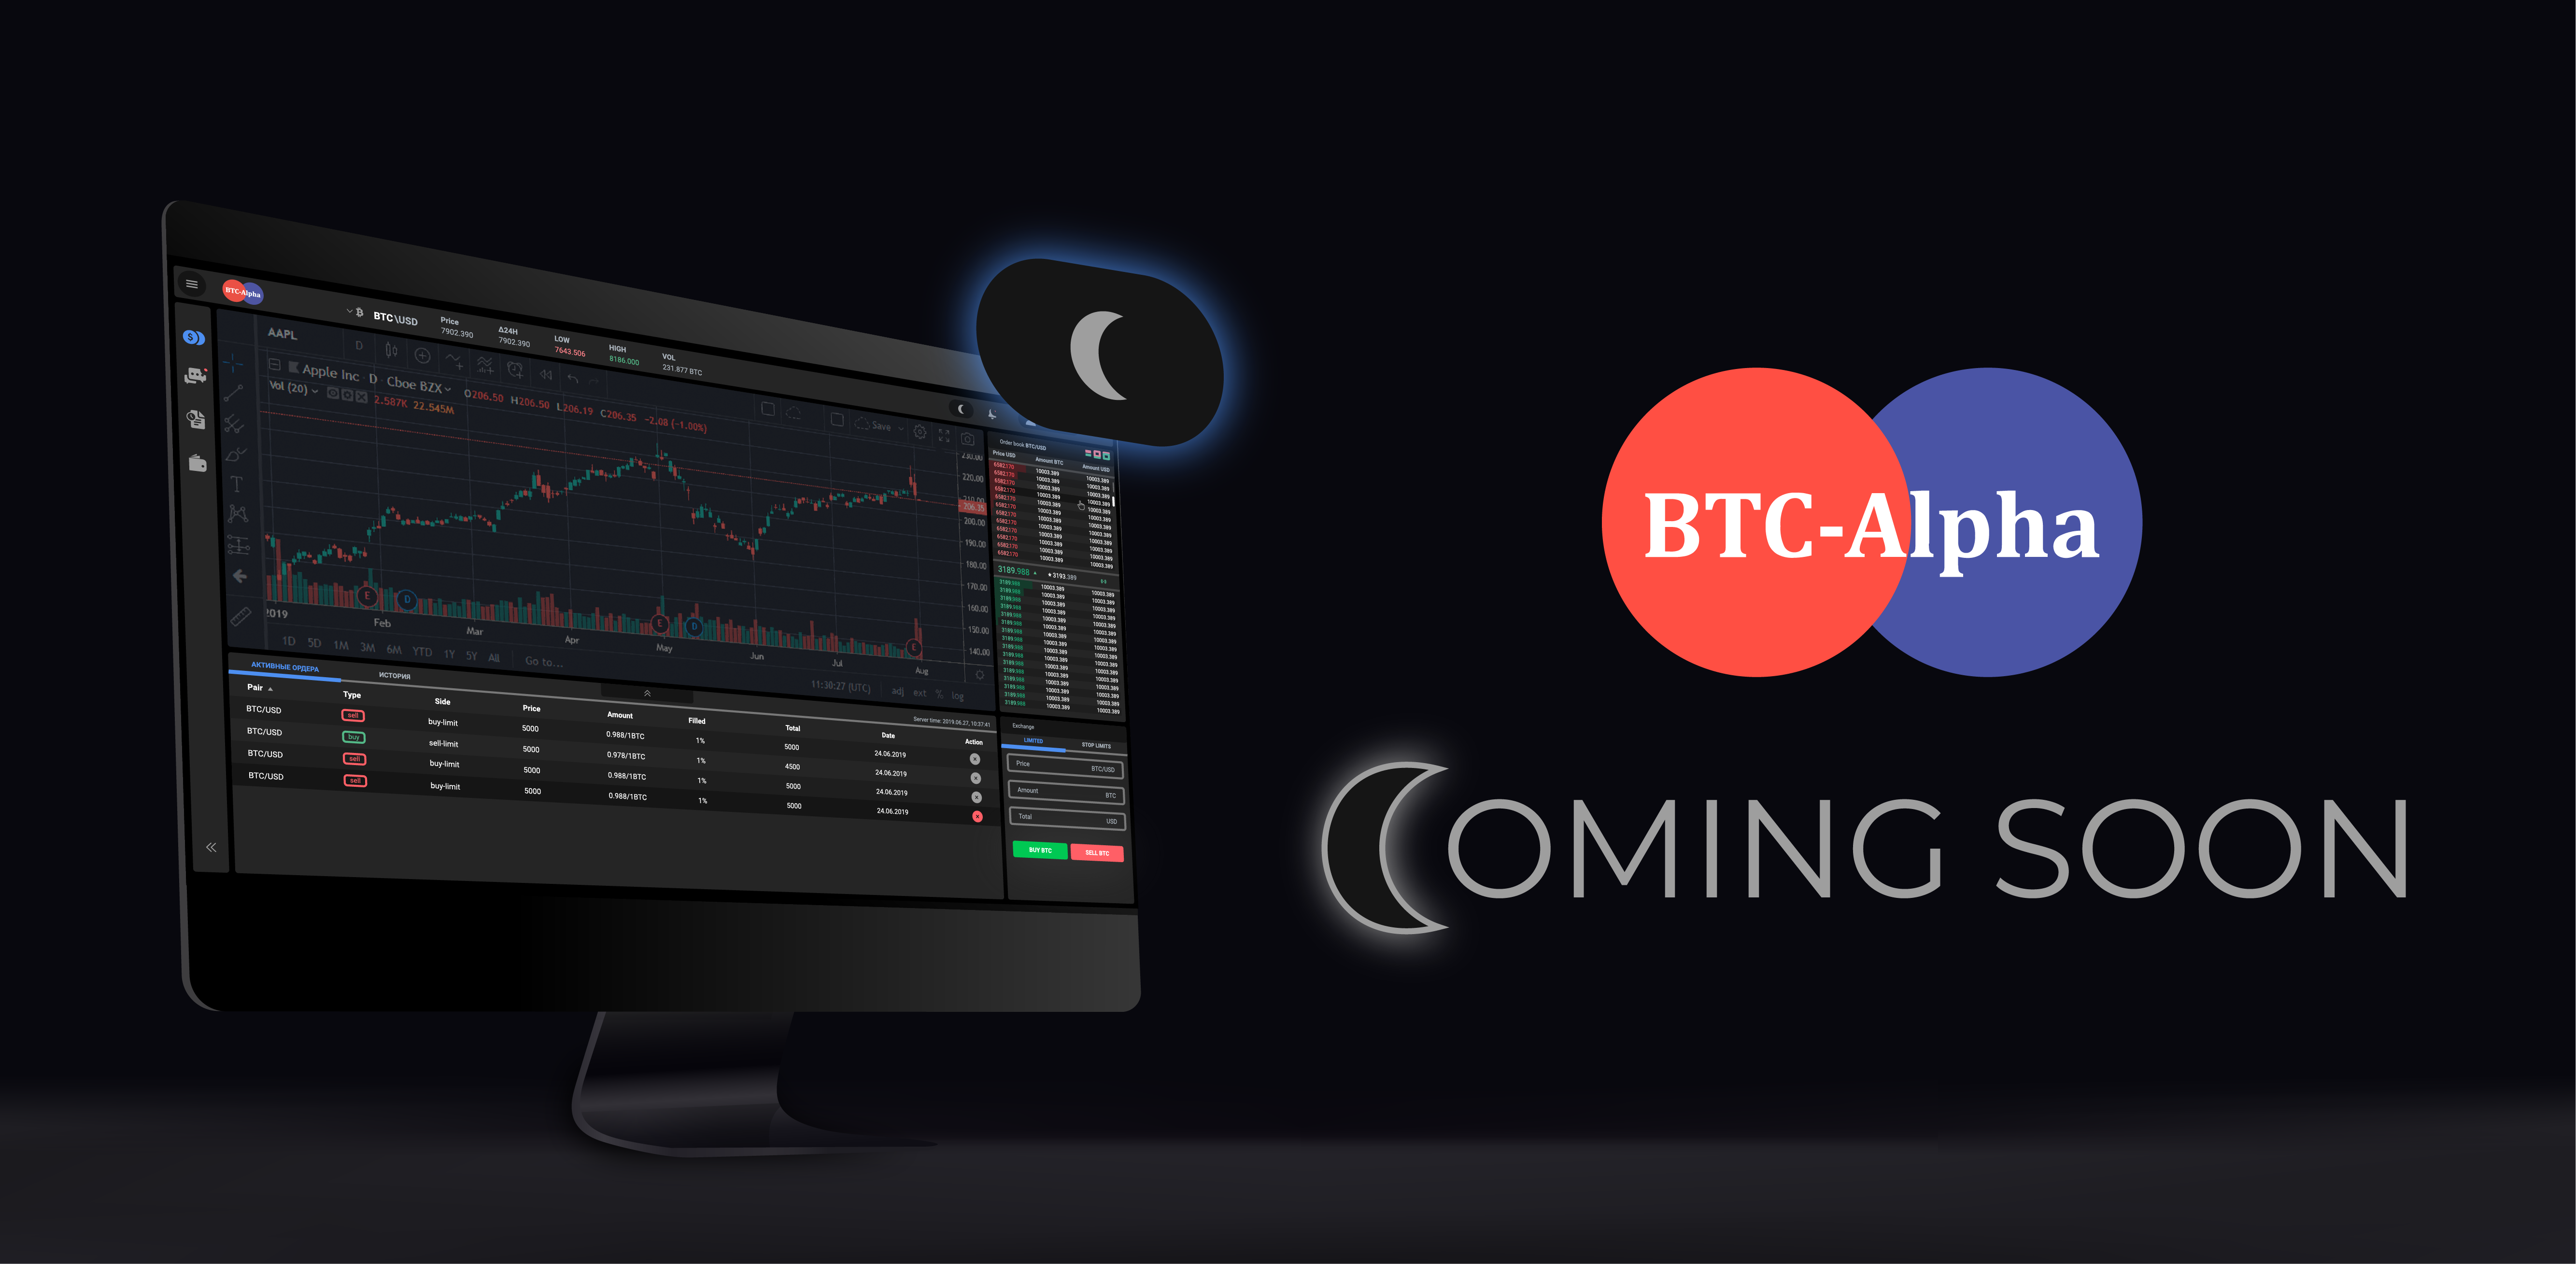 You have been waiting for this! Dark Mode on BTC-Alpha - announcement